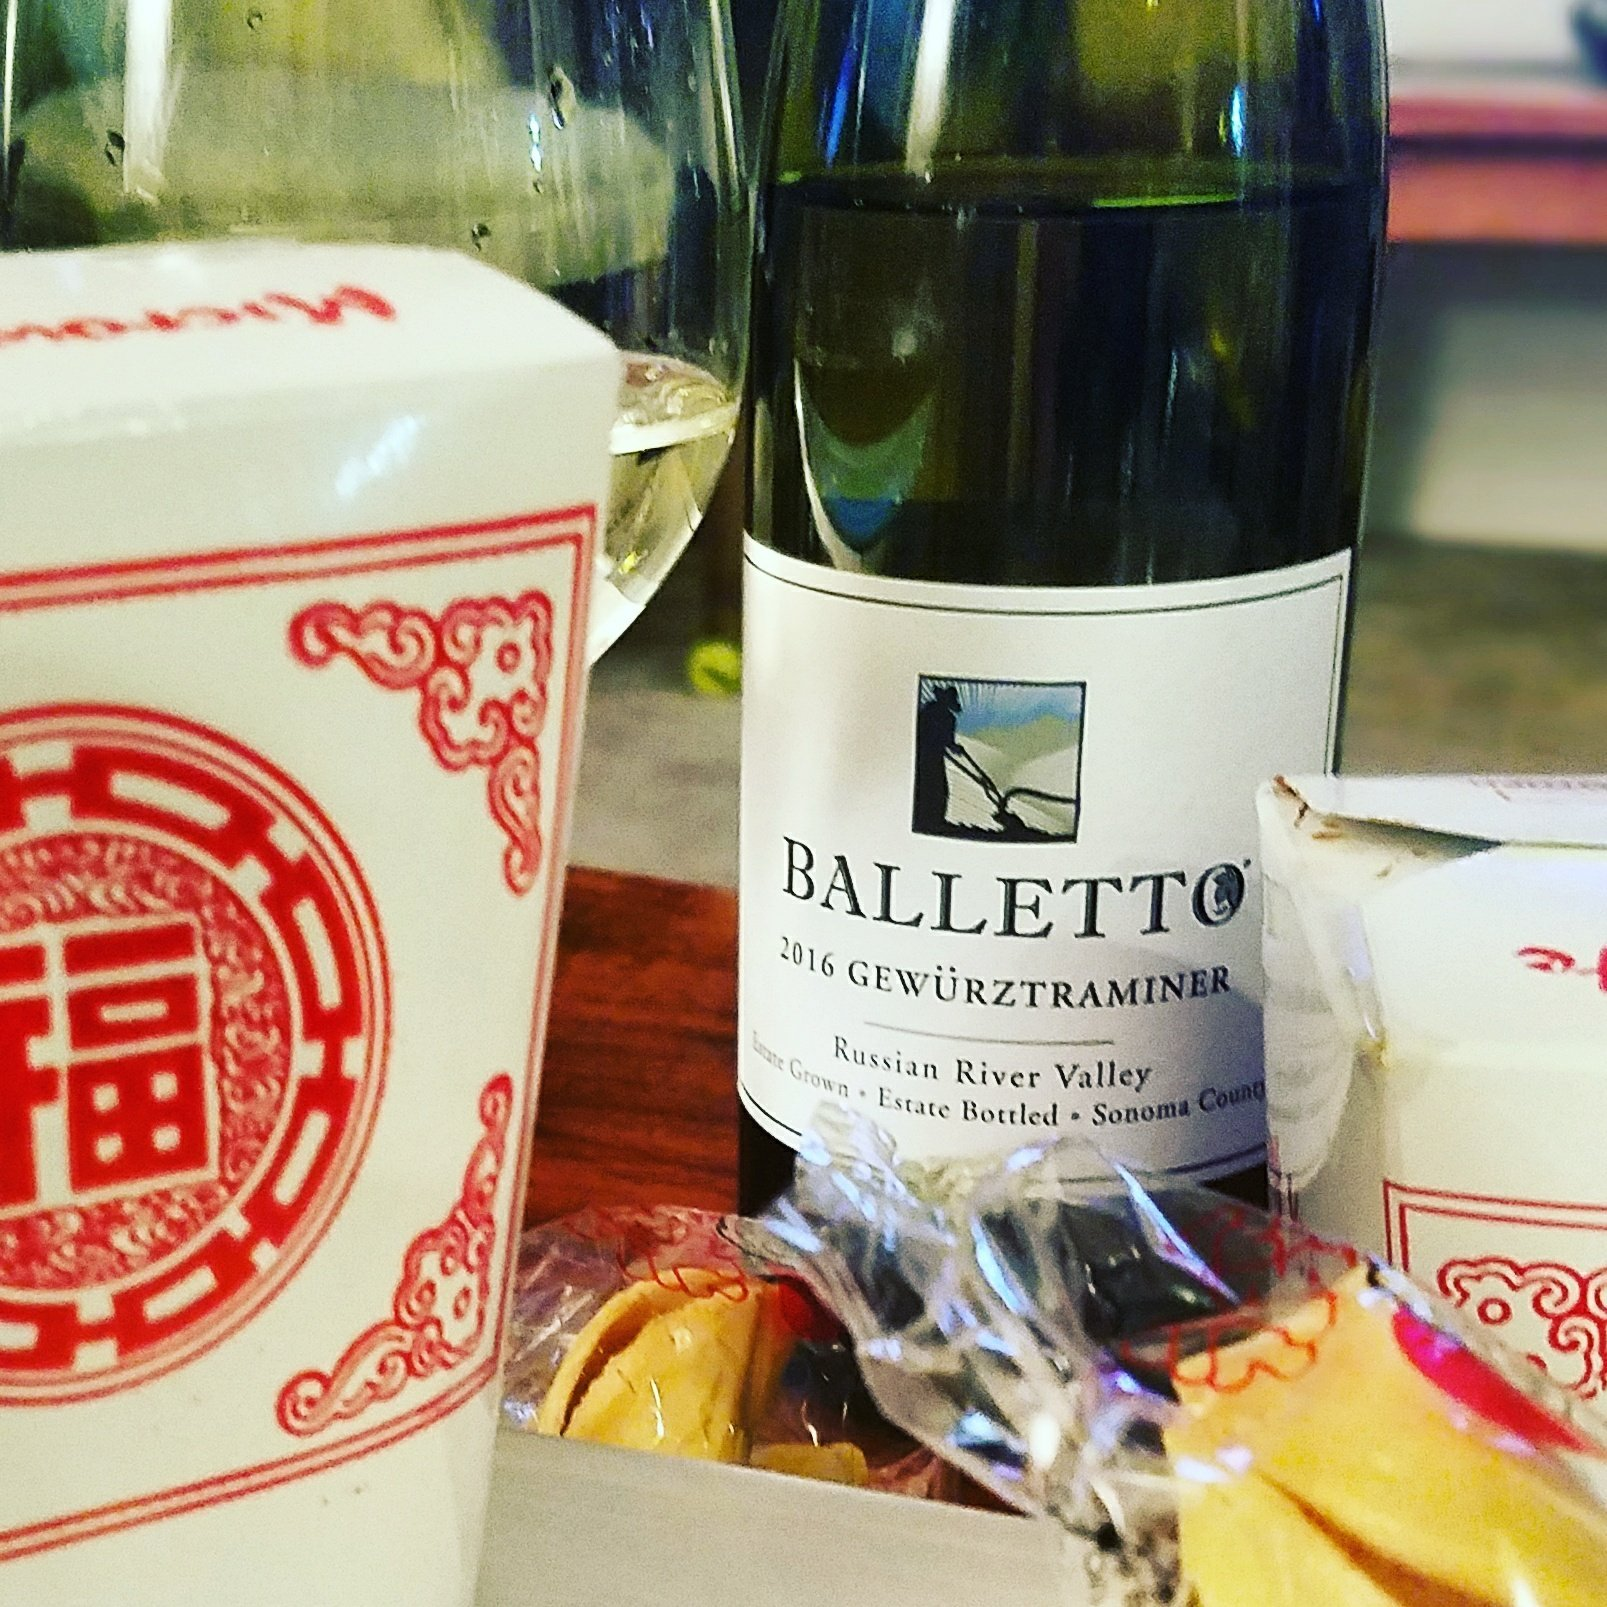 Chinese Takeout and gewürztraminer.